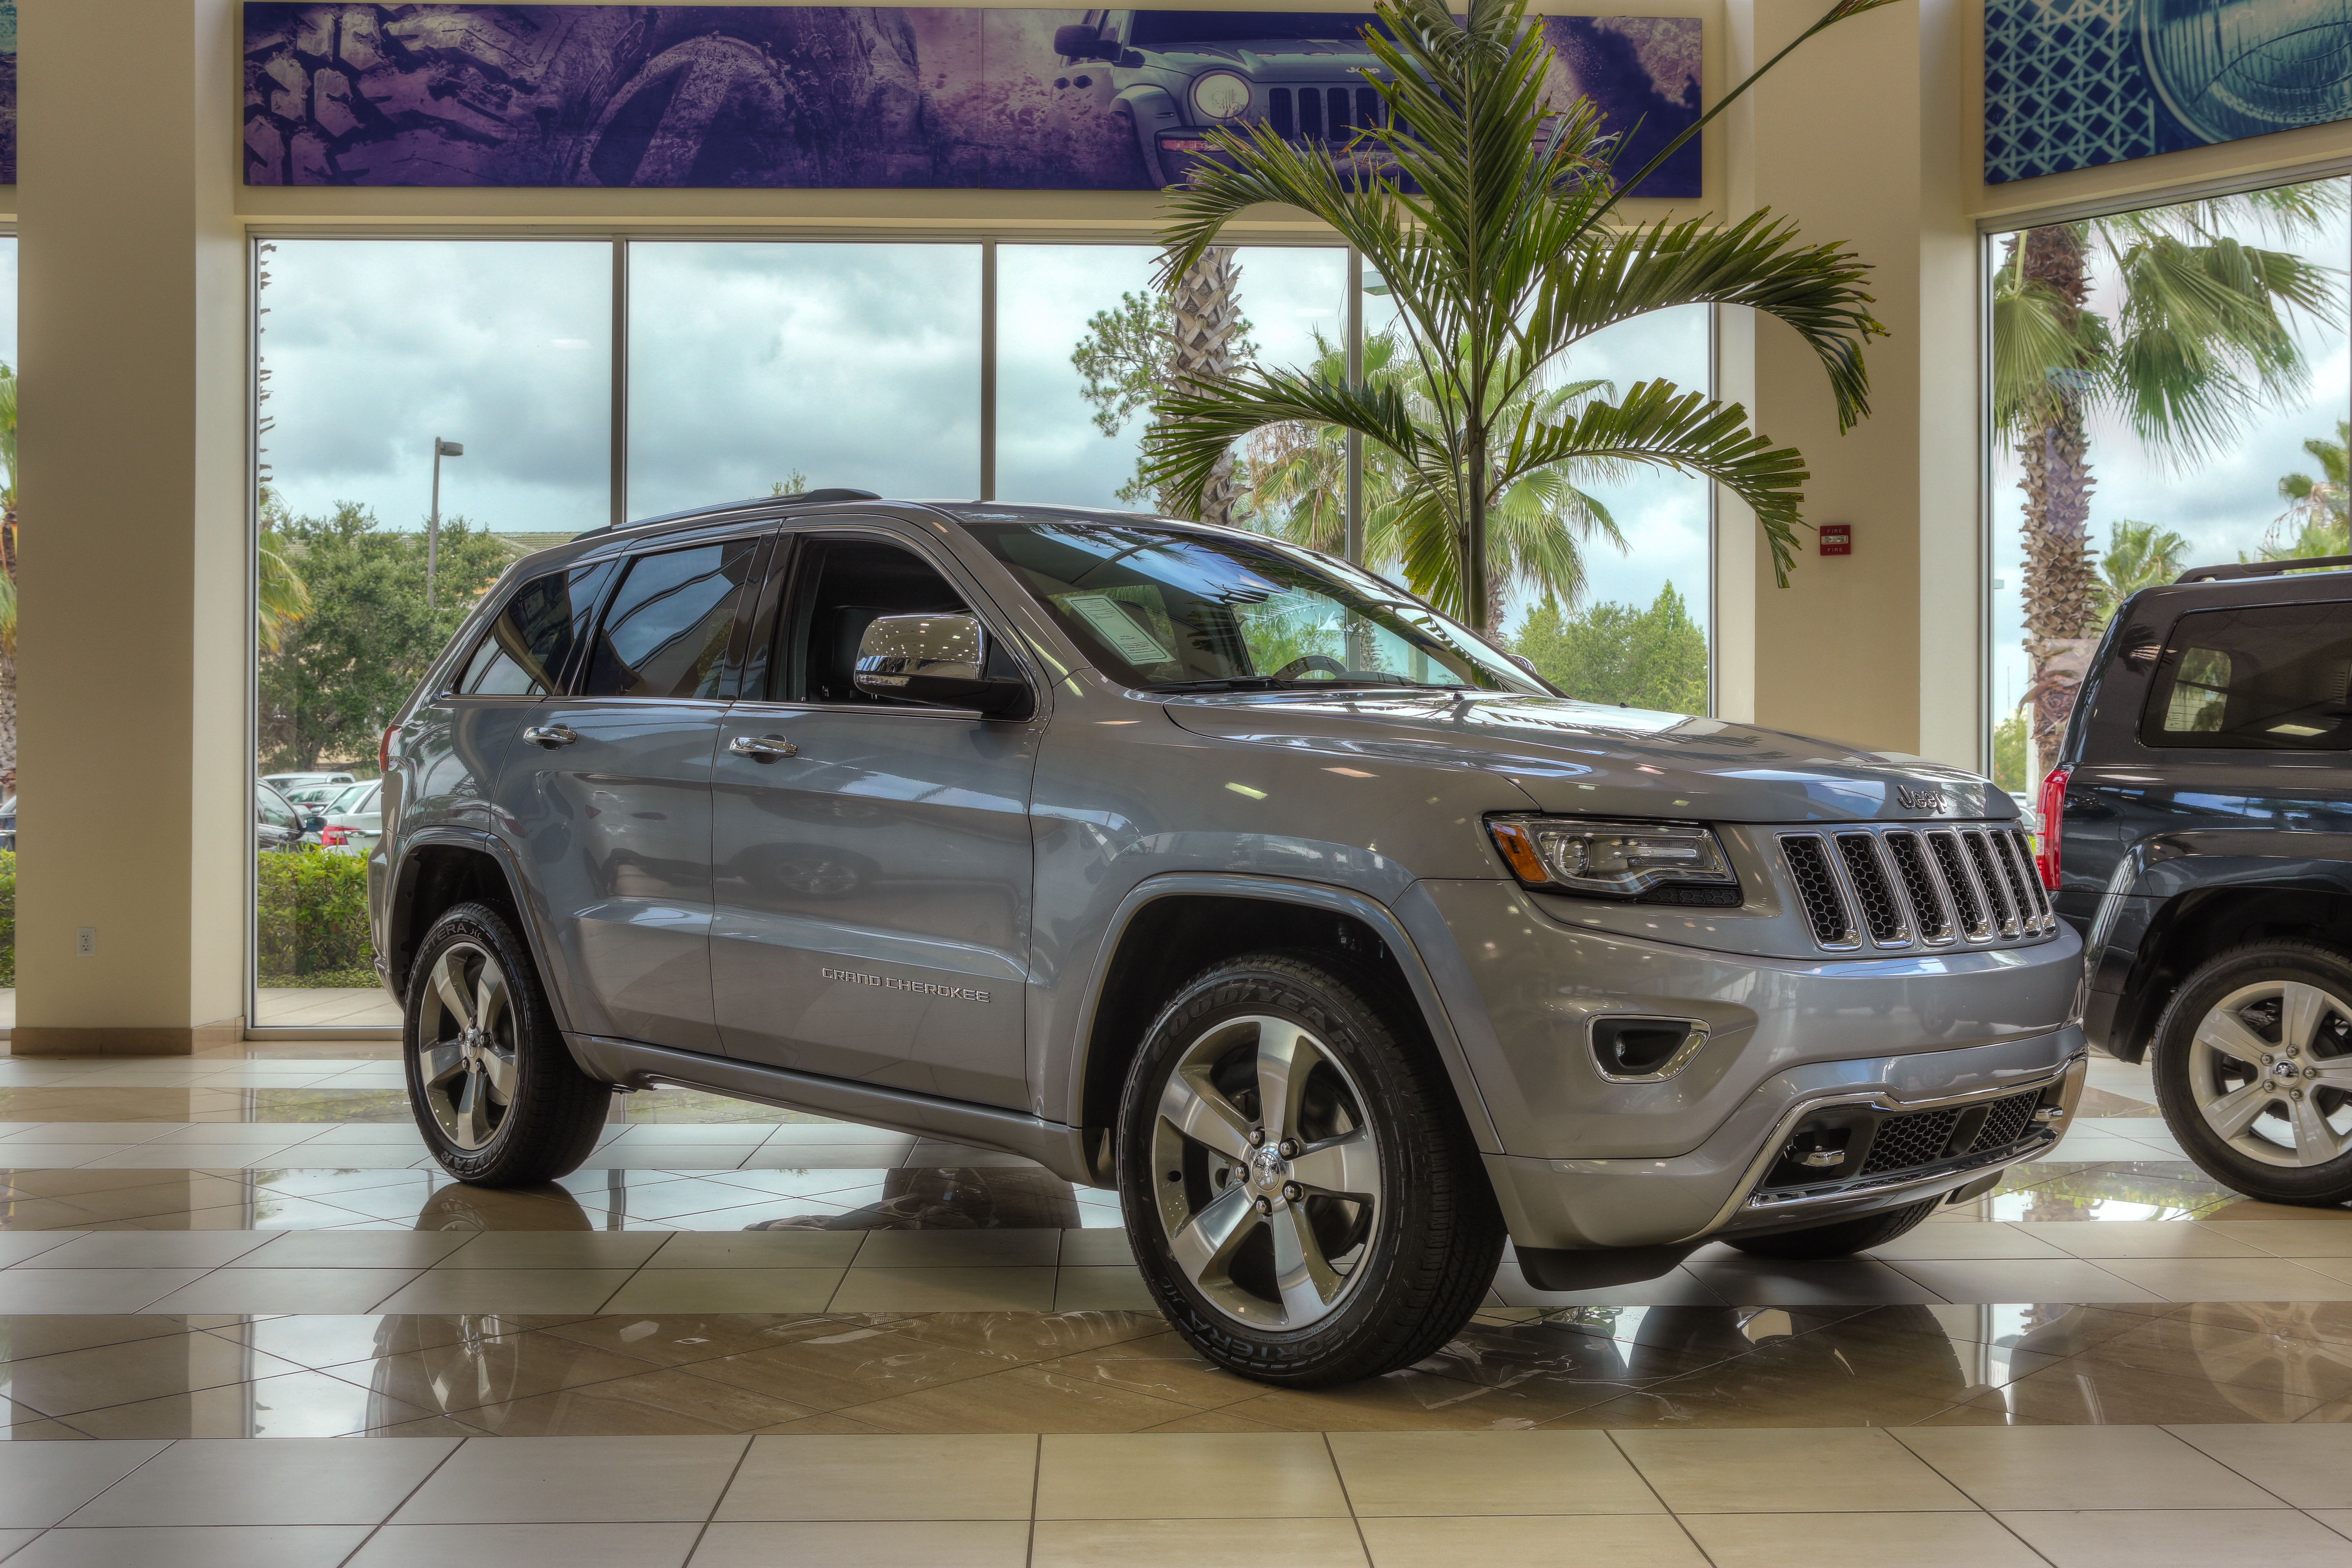 New Chrysler Dodge Jeep Ram Inventory Jeep Dodge Models